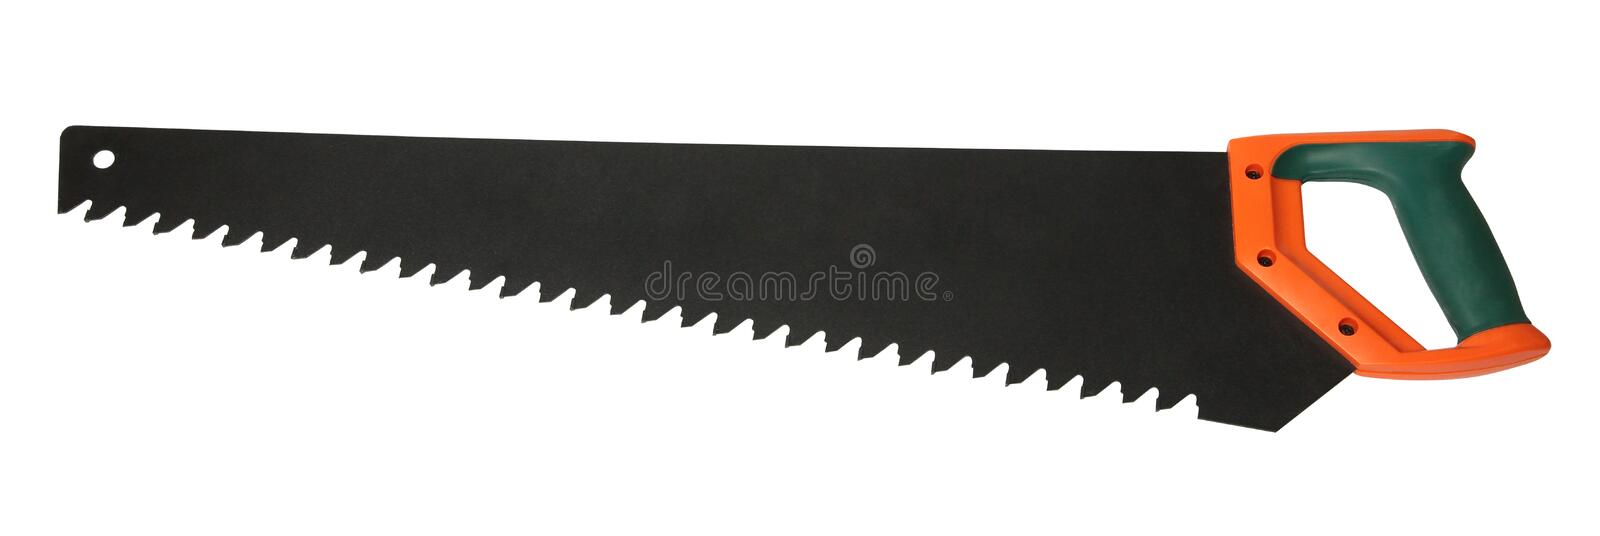 Crosscut saw isolated on white. Hand tools, manual equipment, gardening stock photography